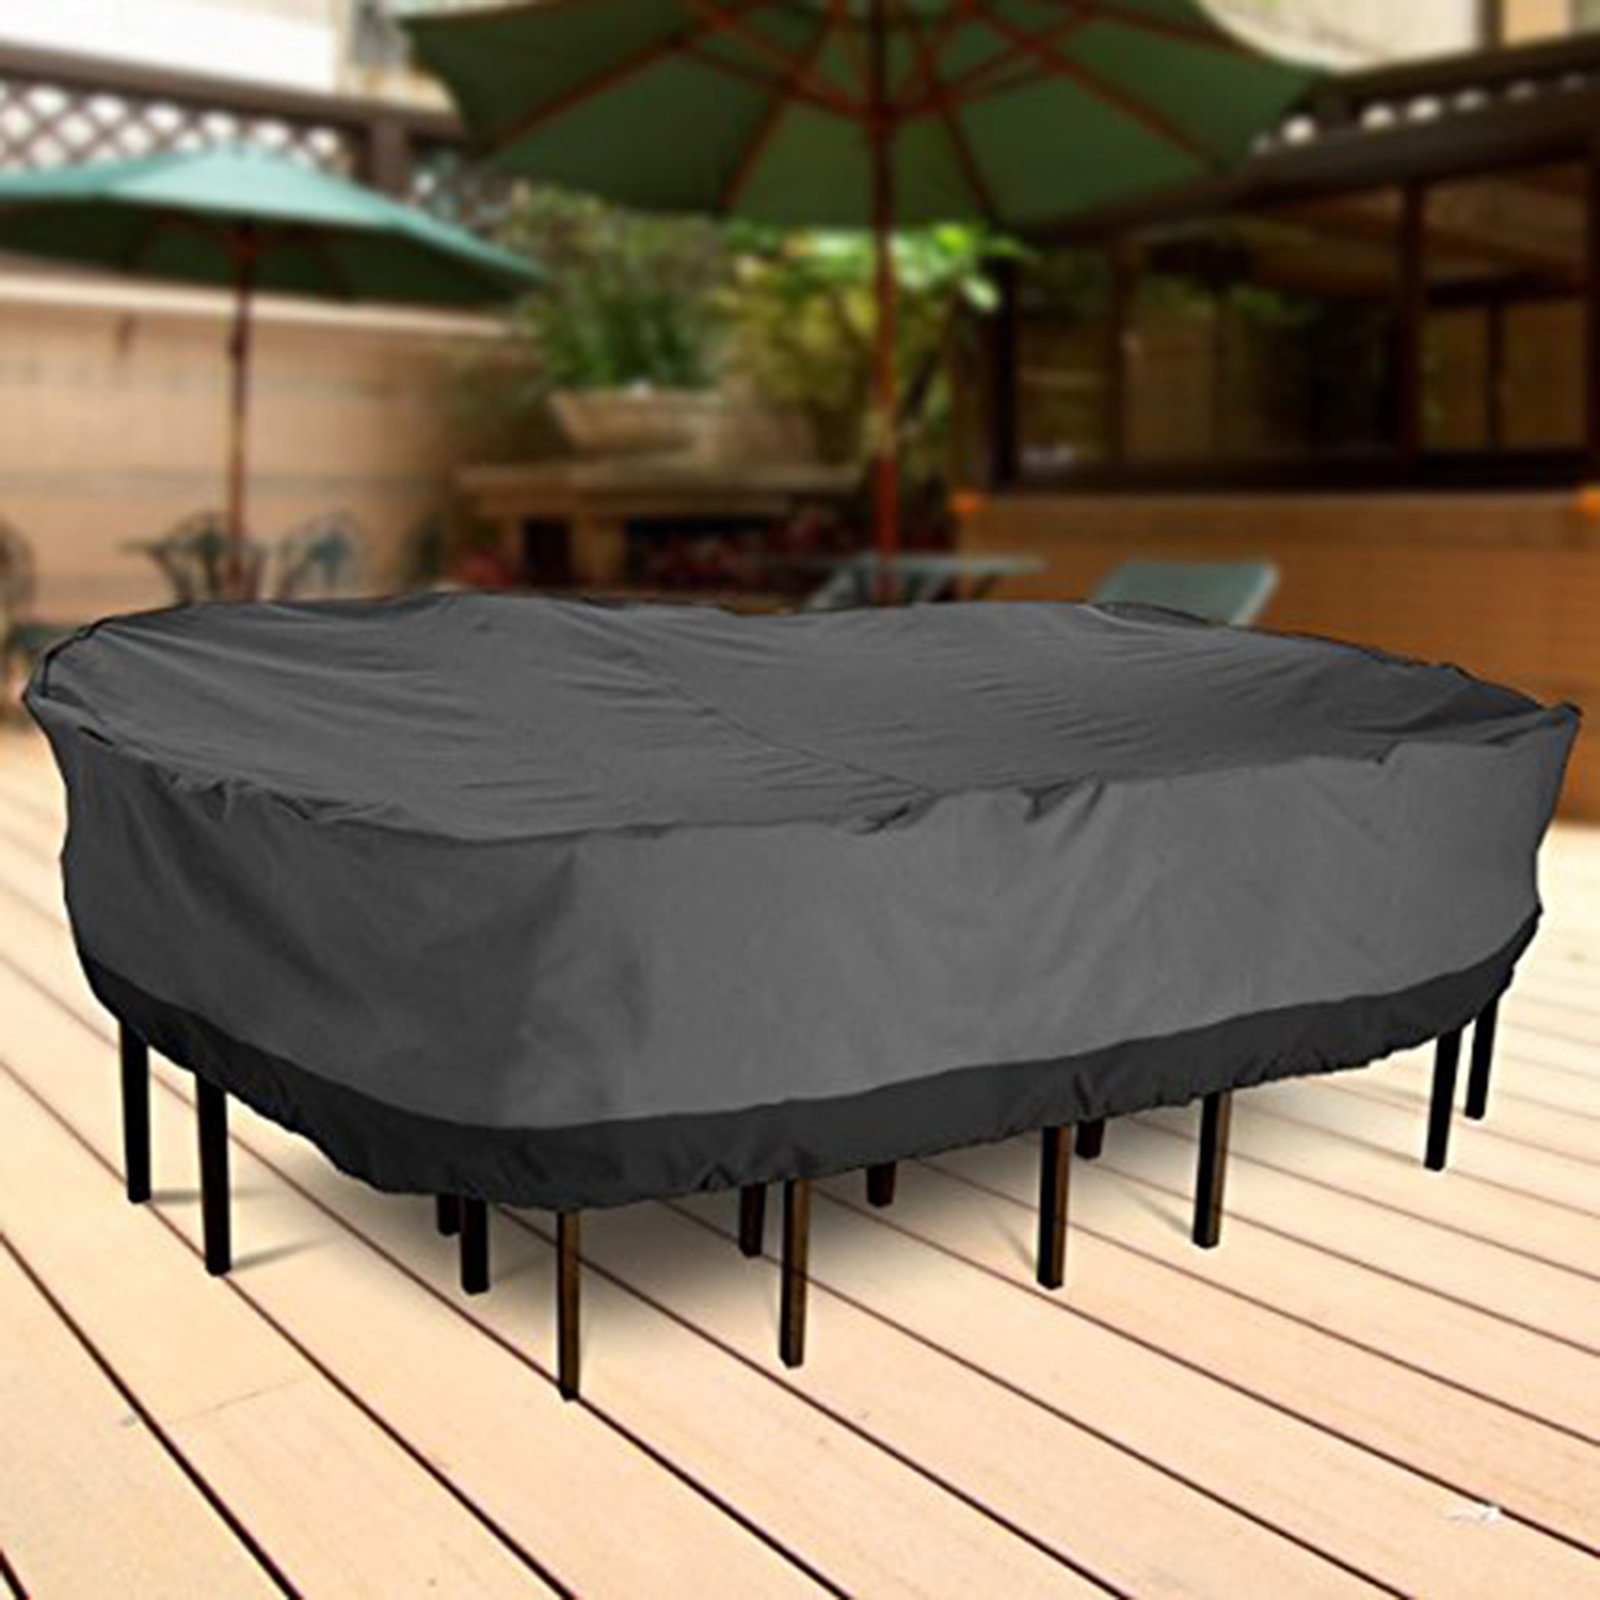 covers rectangular large taupe side cover ottoman living table ottomanside furniture ravenna deals patio outdoor classic accessories